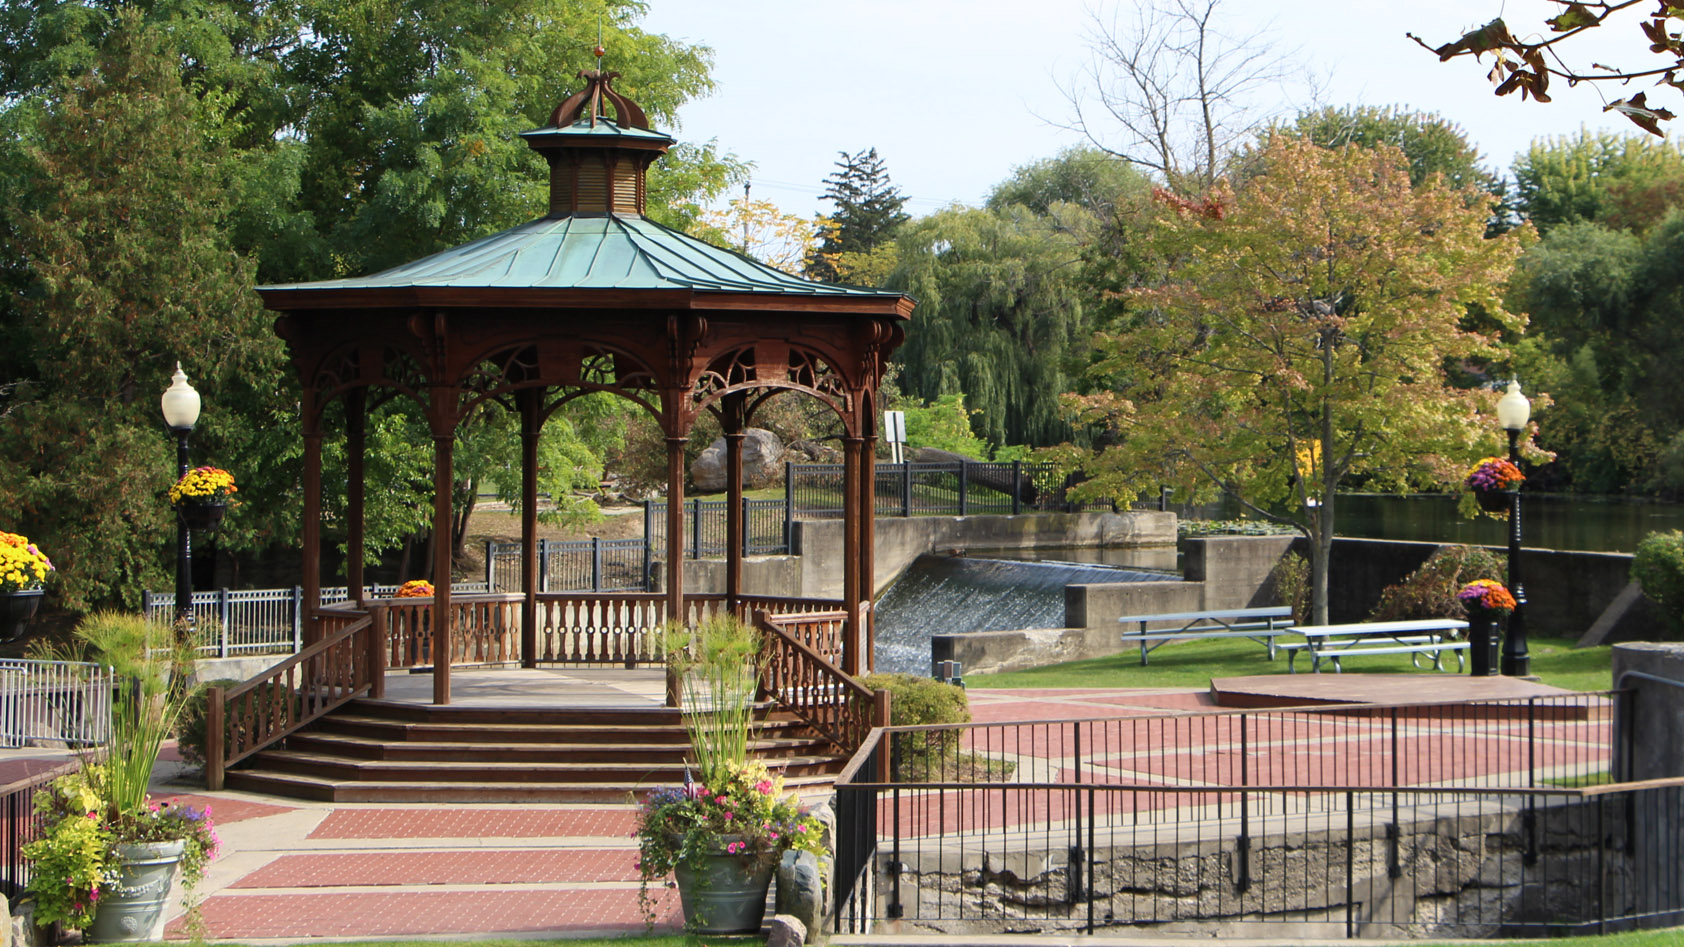 The Gazebo in Fenton Michigan